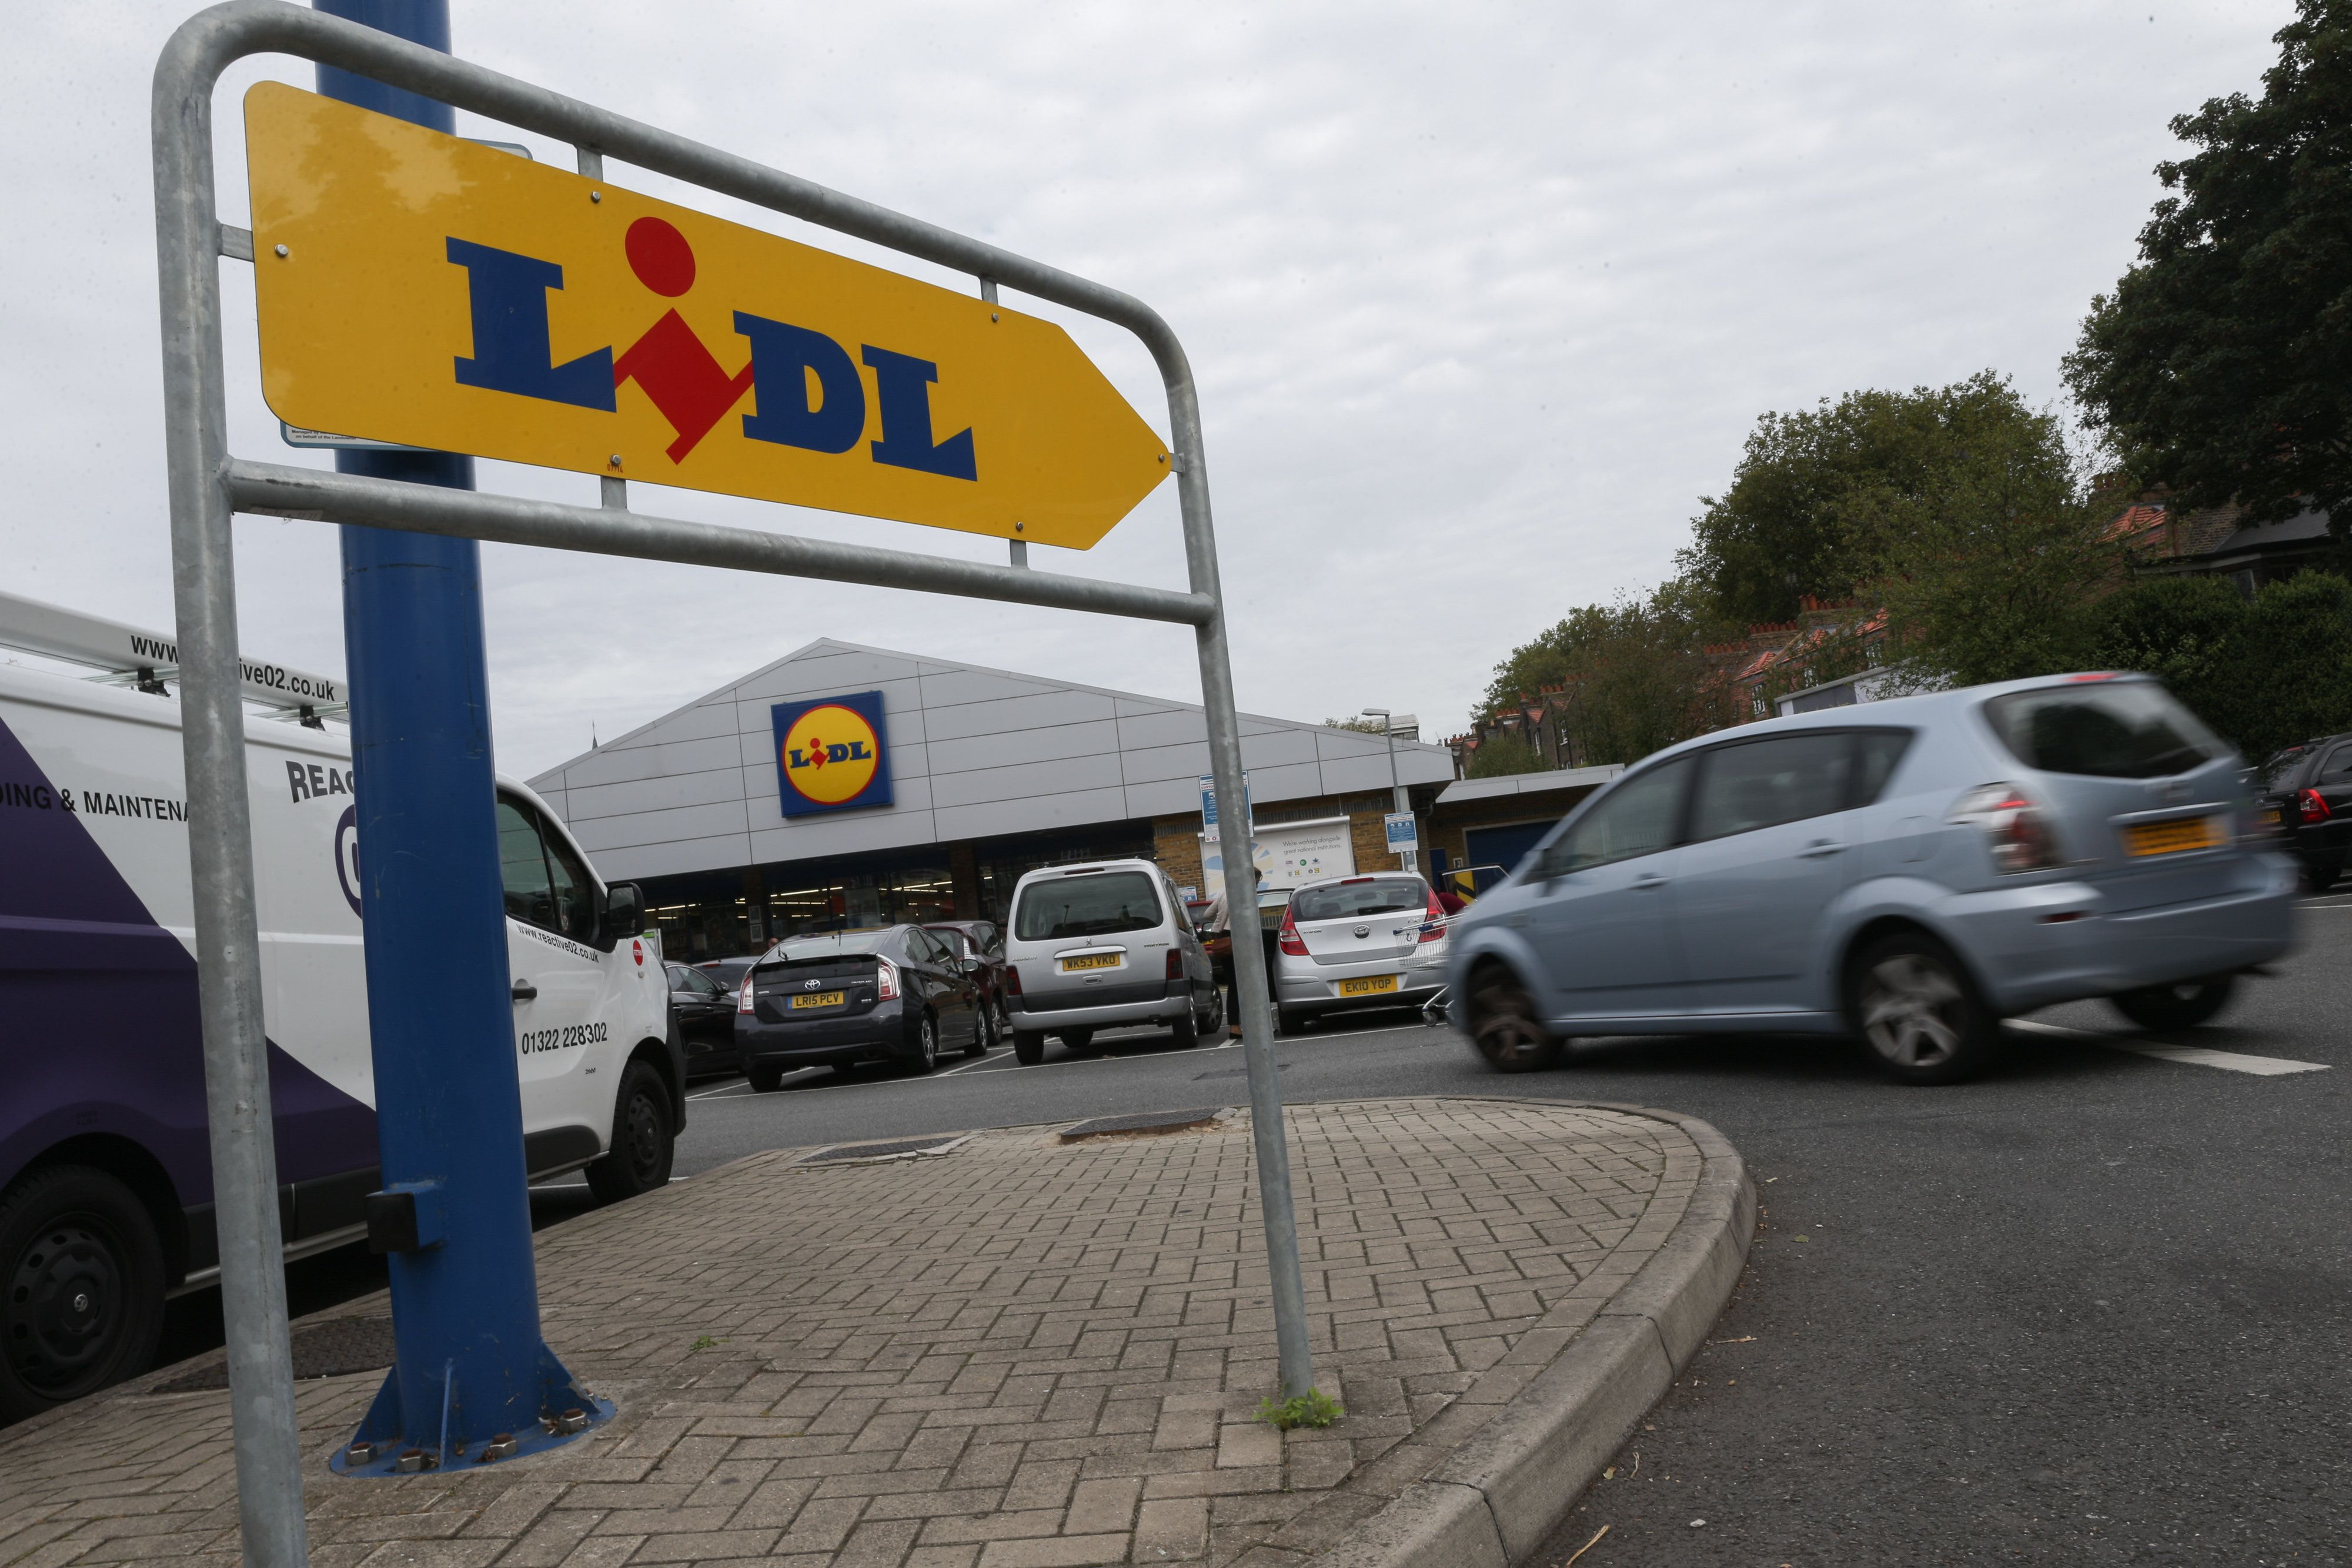 Lidl Jobs Now Paid Voluntary Living Wage Of At Least £8.45 An